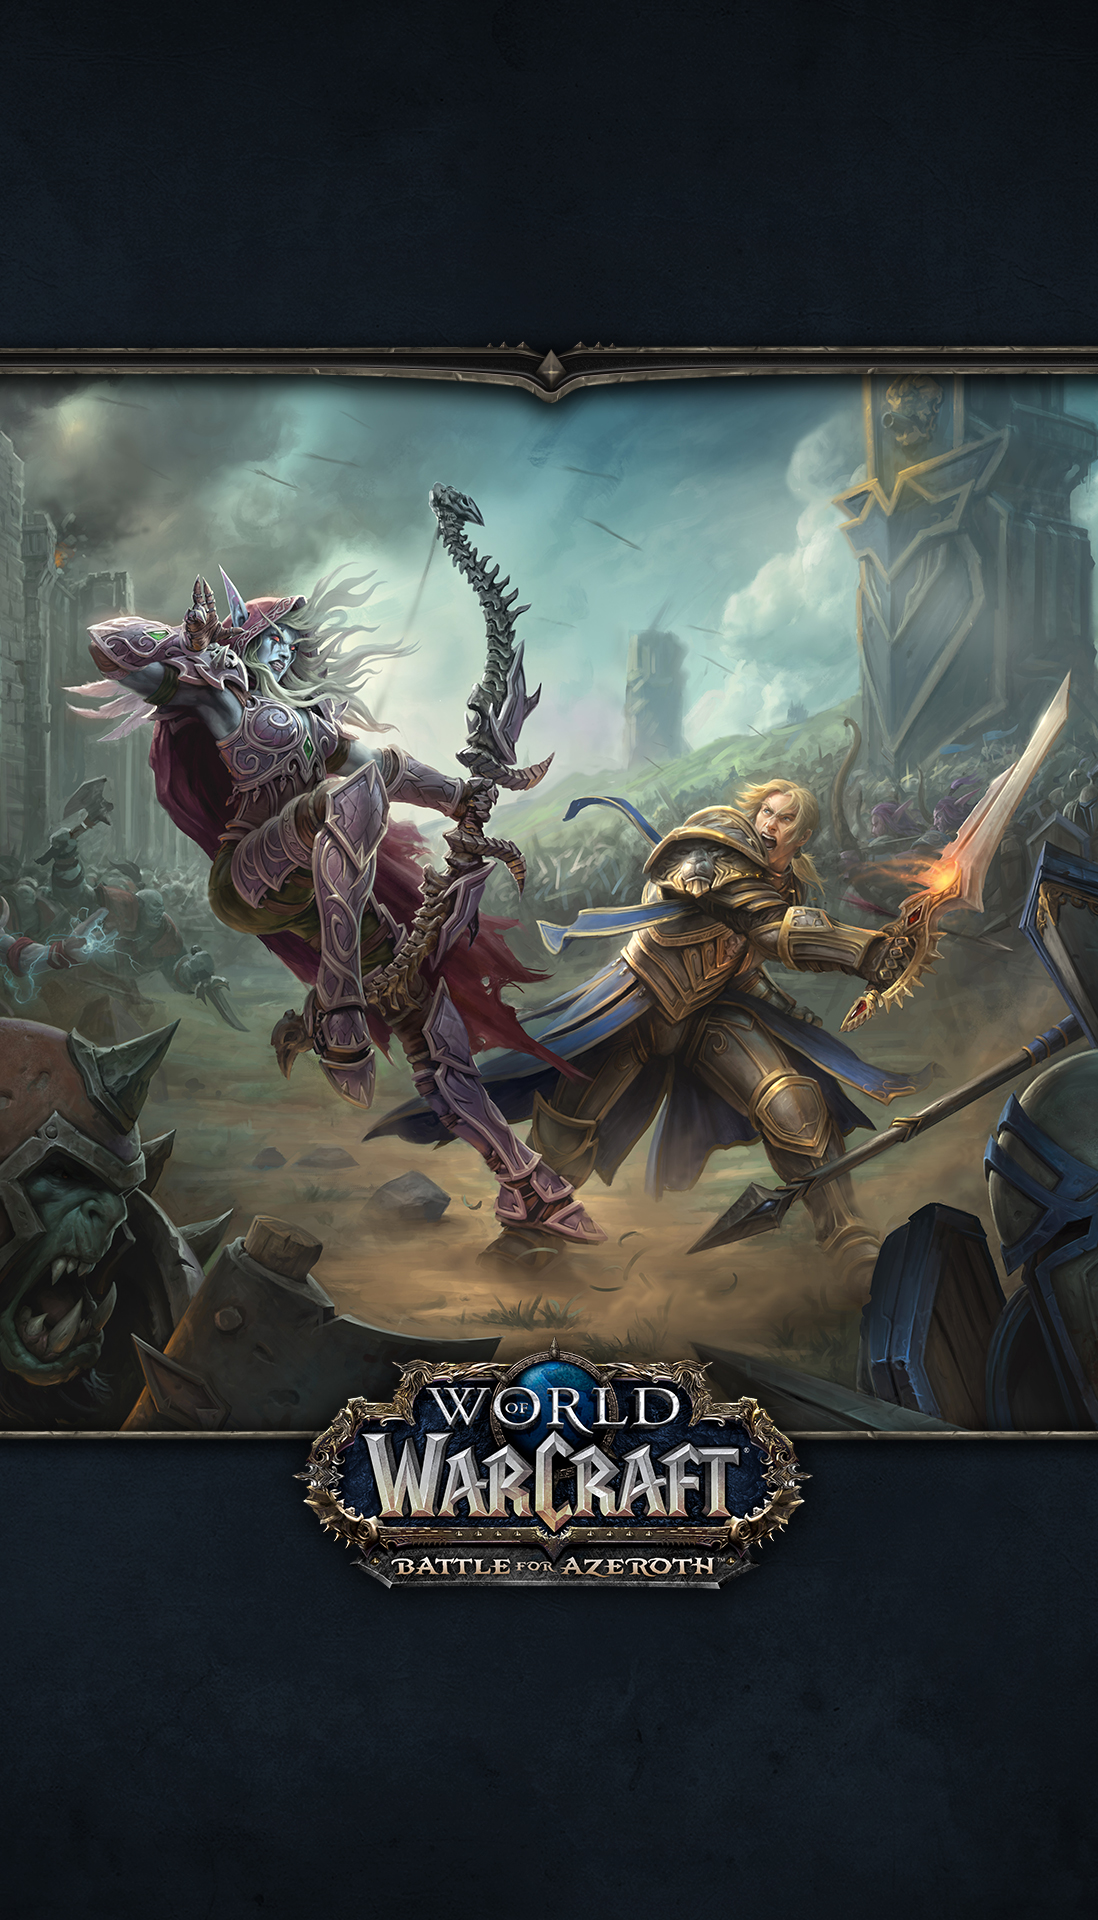 World Of Warcraft Iphone Wallpaper Posted By Ryan Sellers